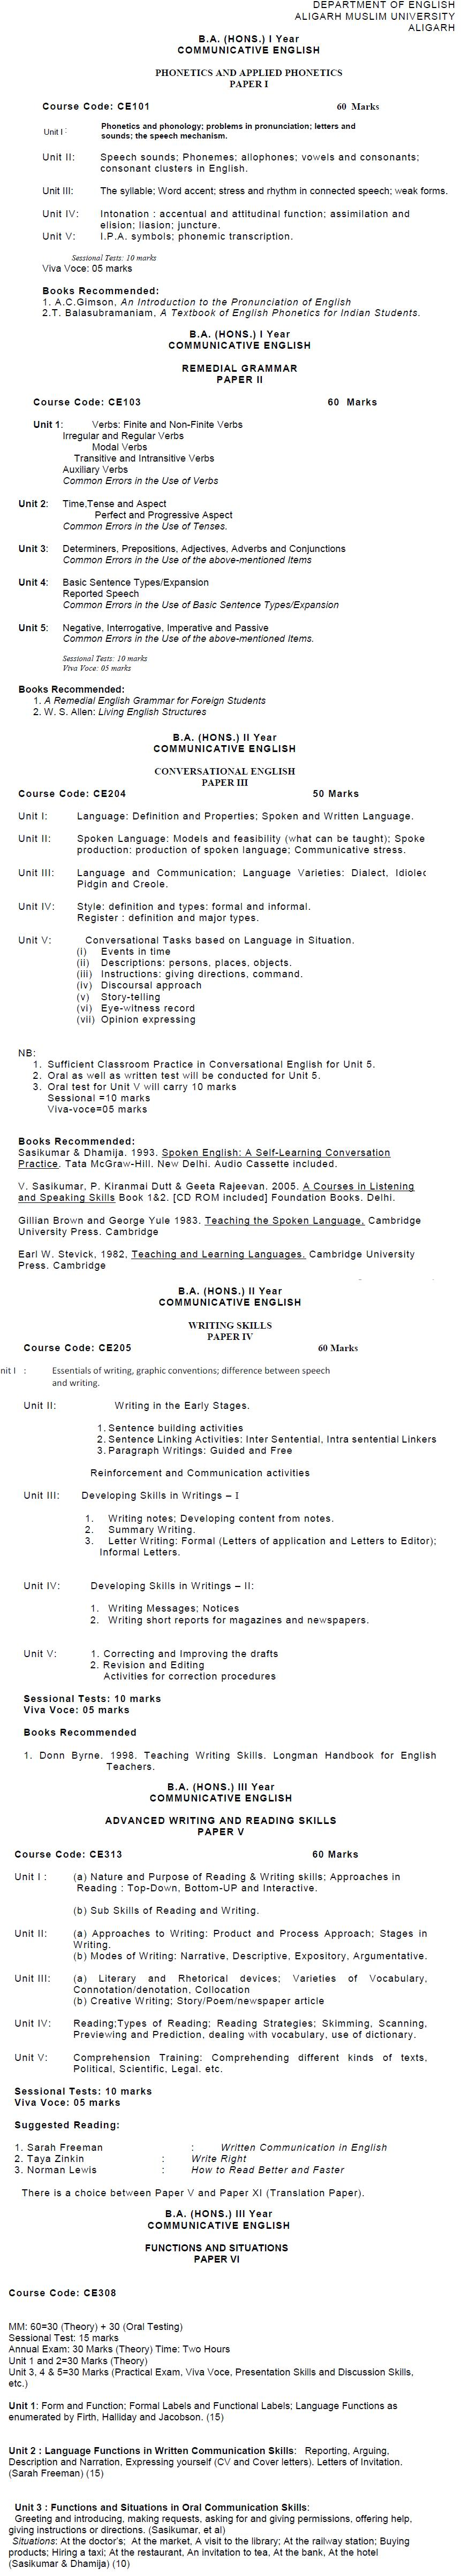 AMU Syllabus - Arts - M. A. English/M. A. ELT